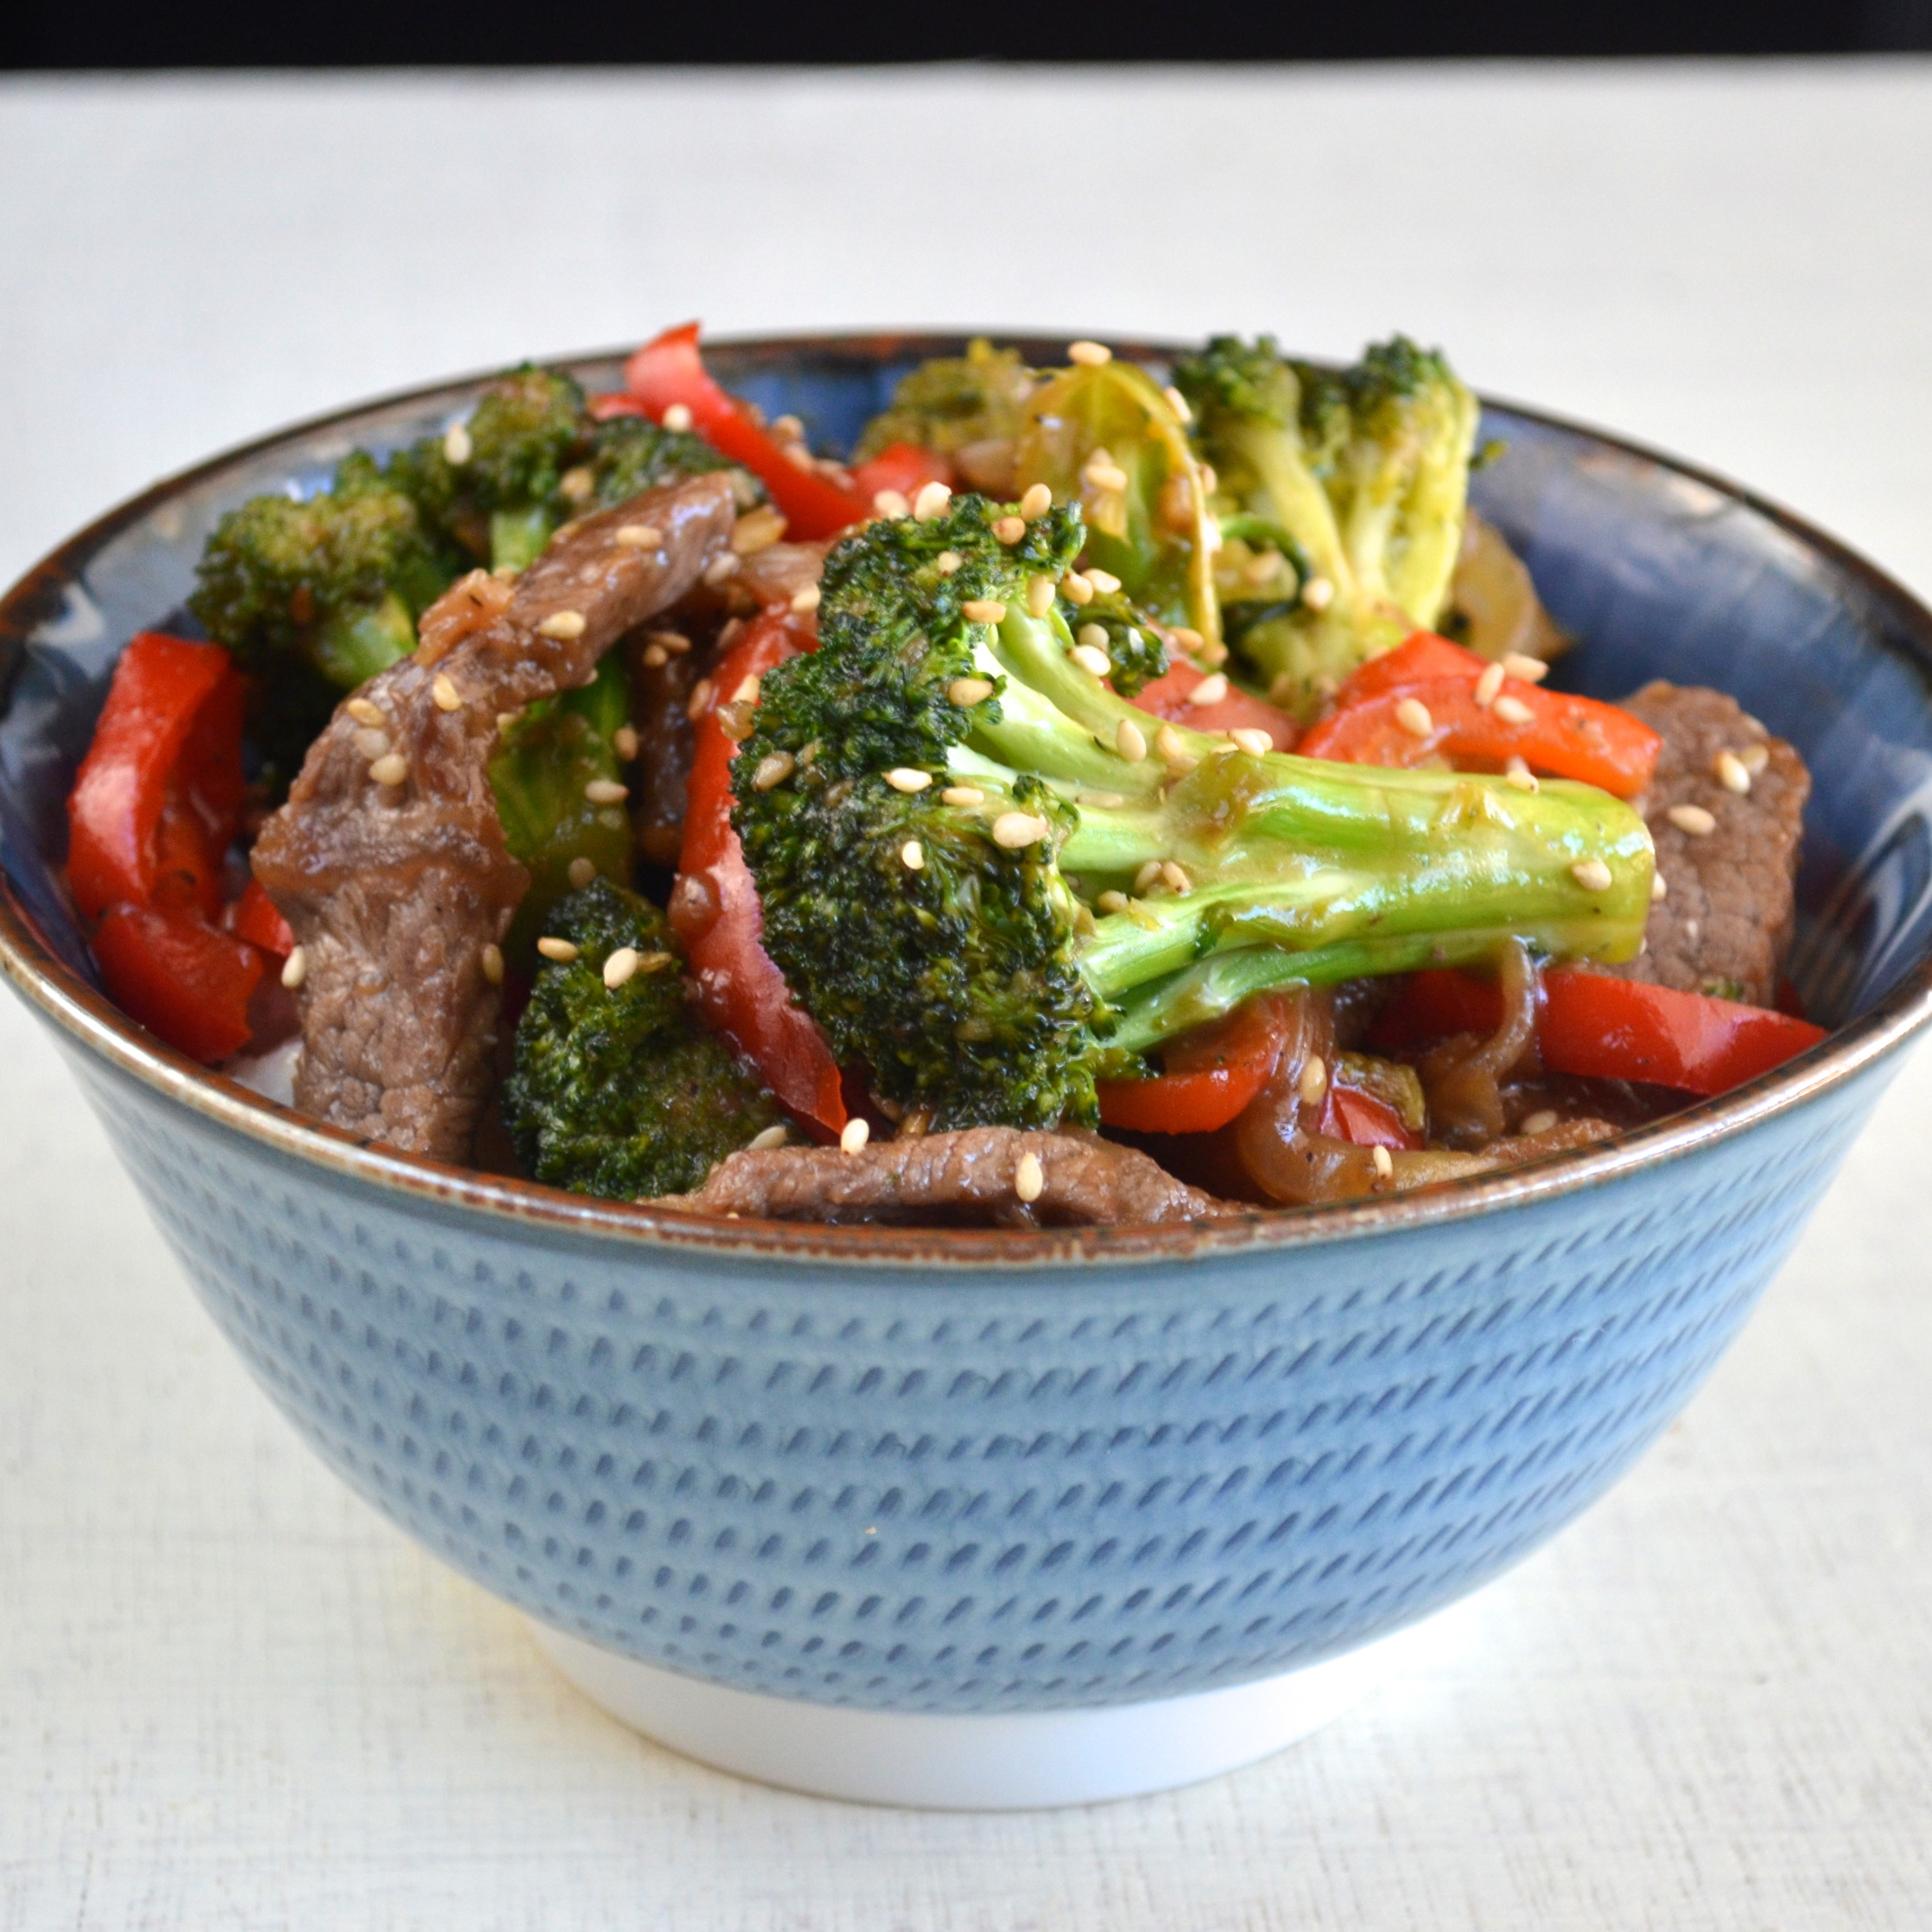 Broccoli and Beef Recipe